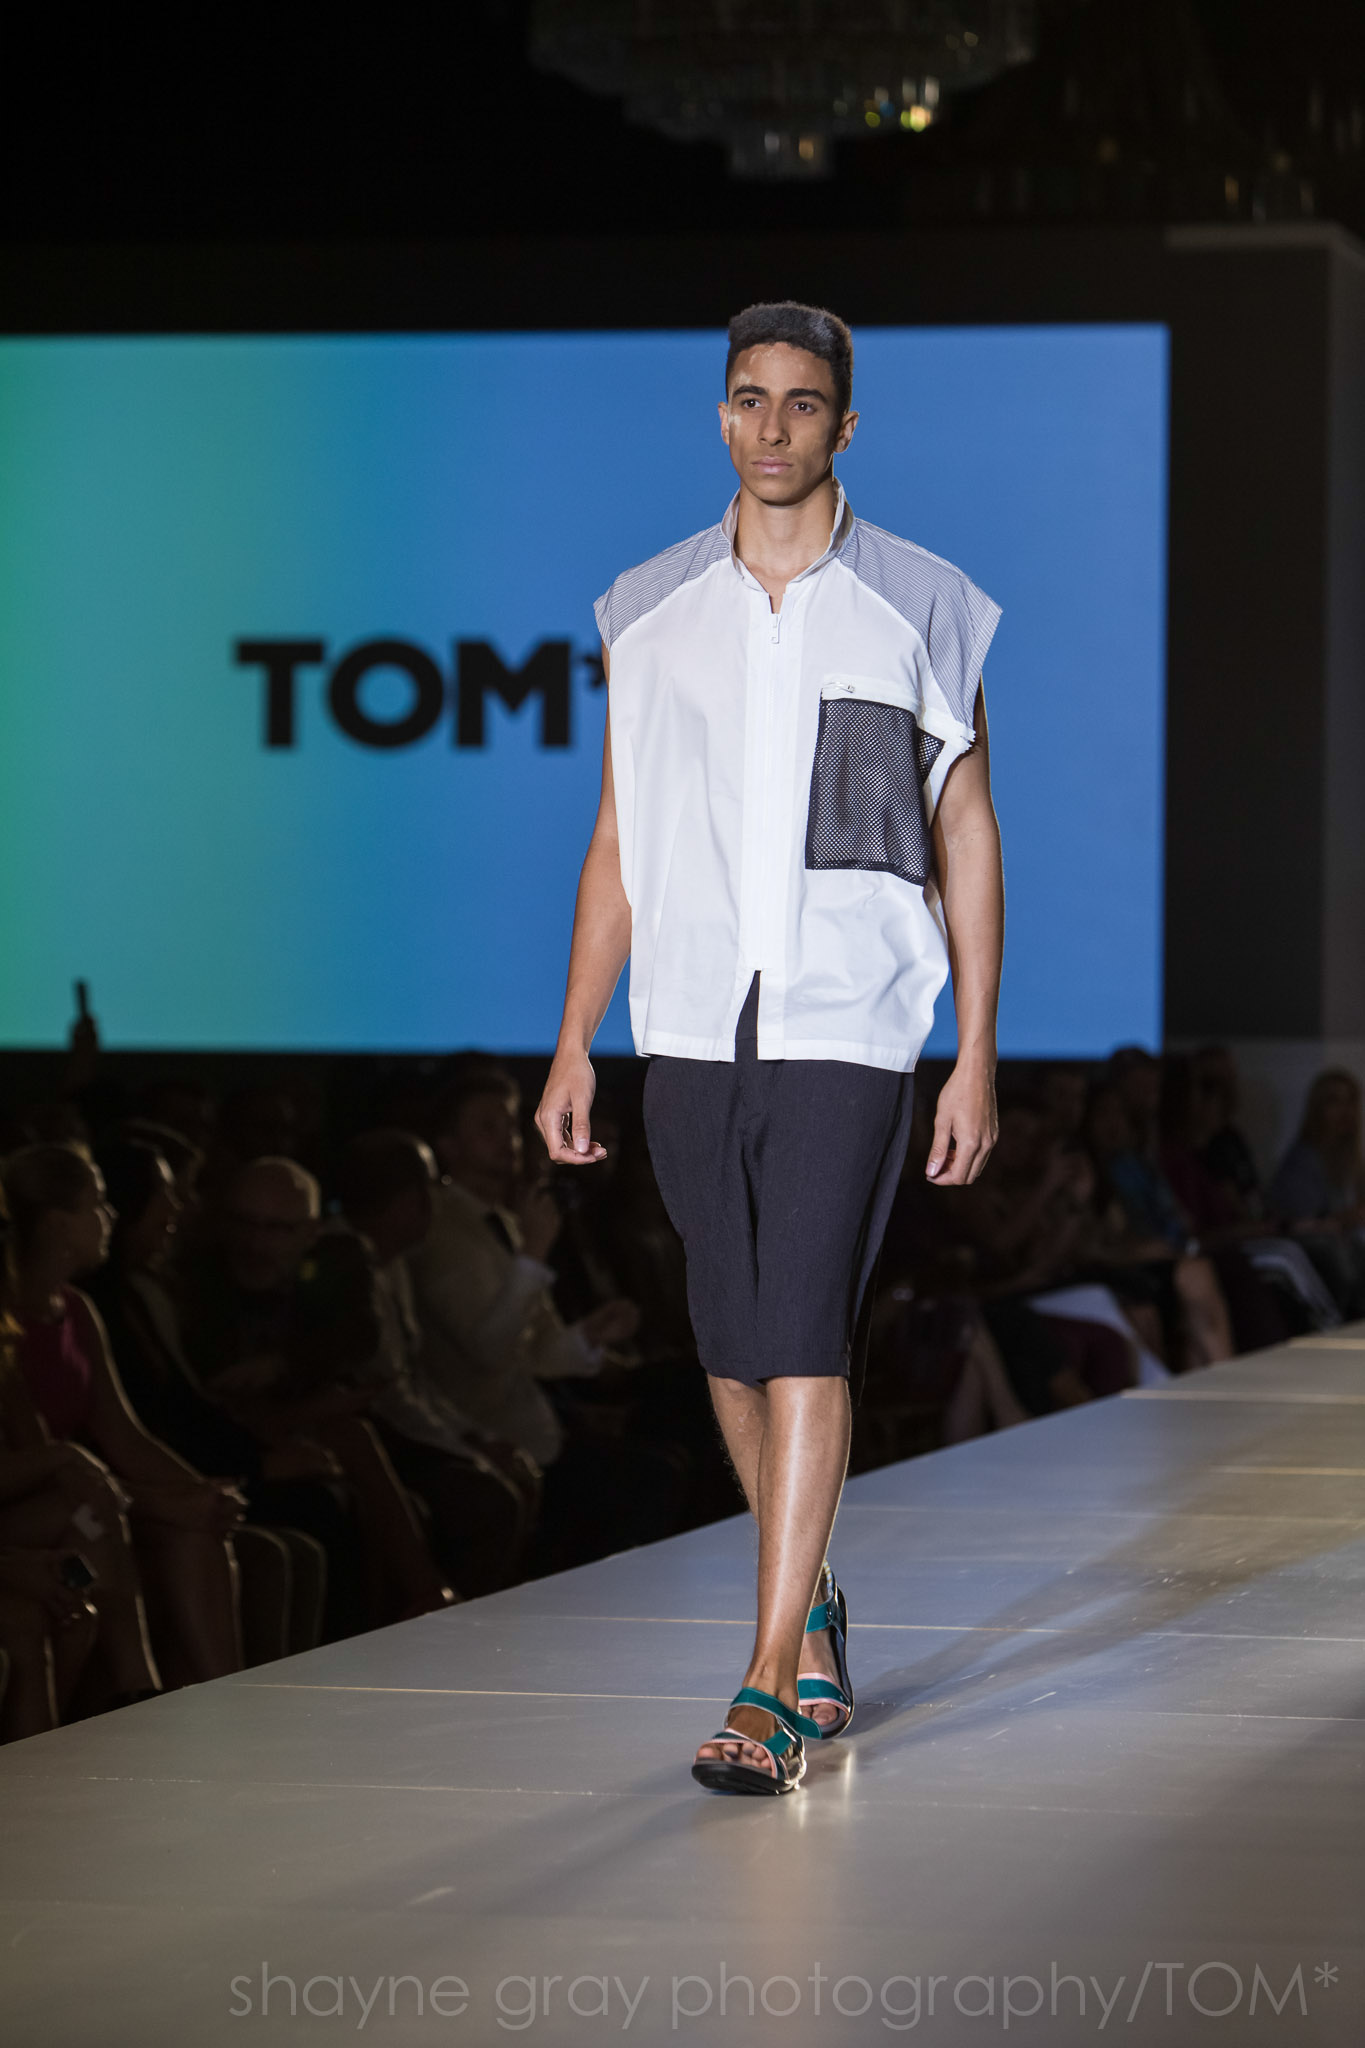 Shayne-Gray-Toronto-men's-fashion_week-TOM-jose-duran-7760.jpg